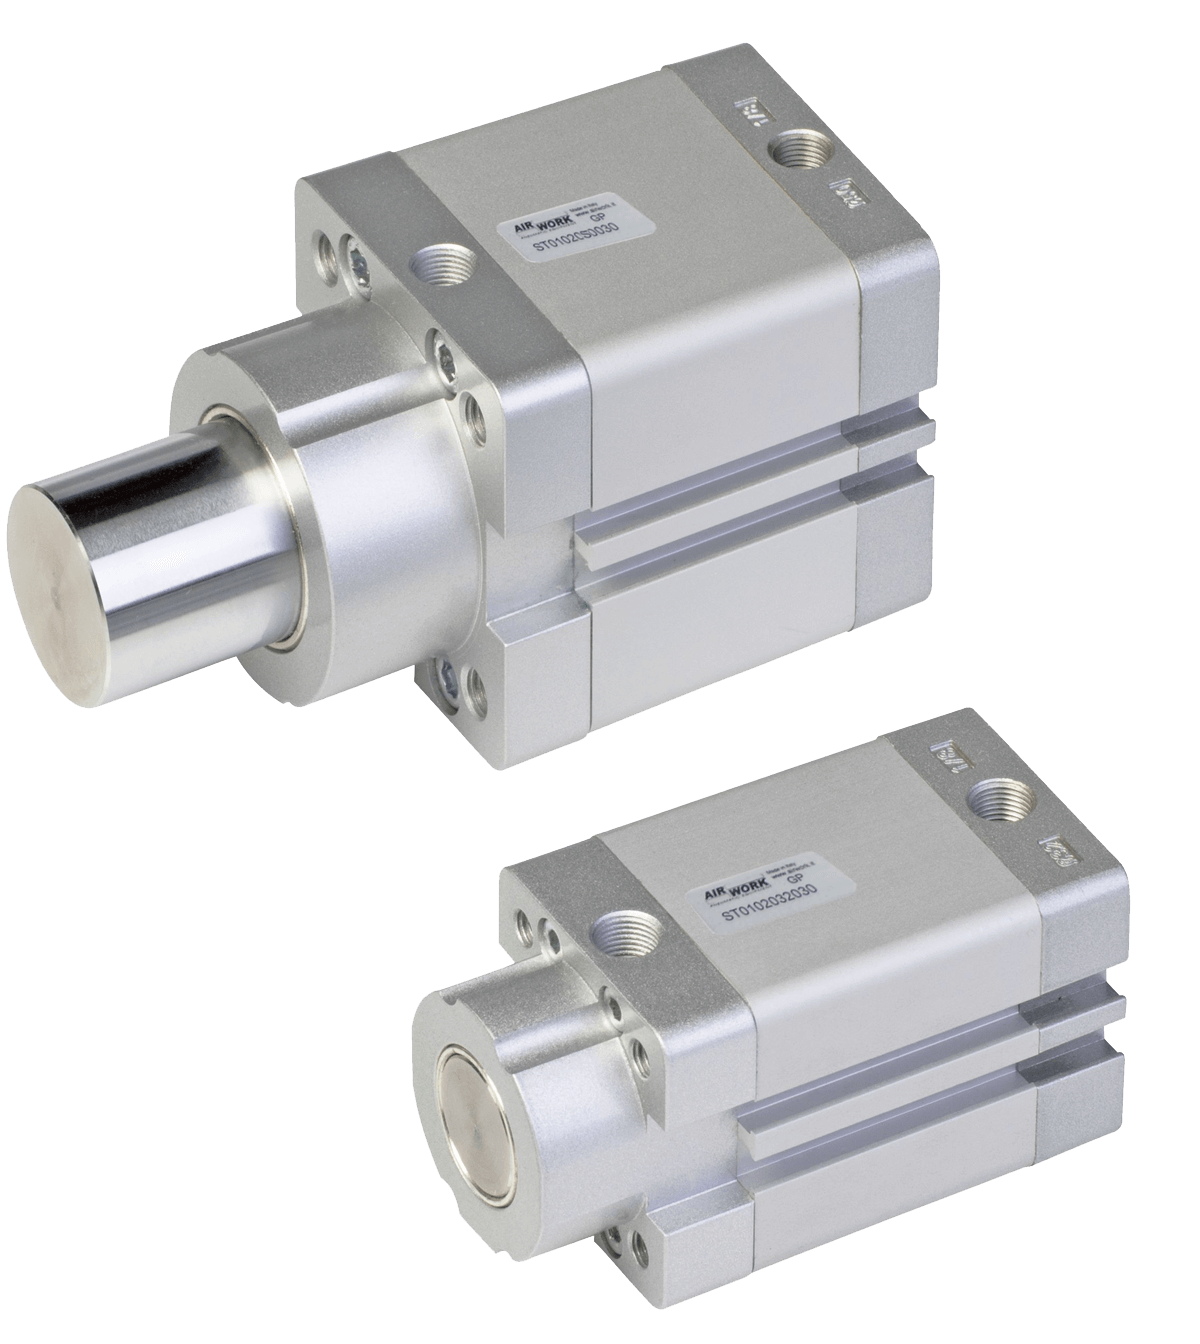 image showing a pneumatic stopper cylinder